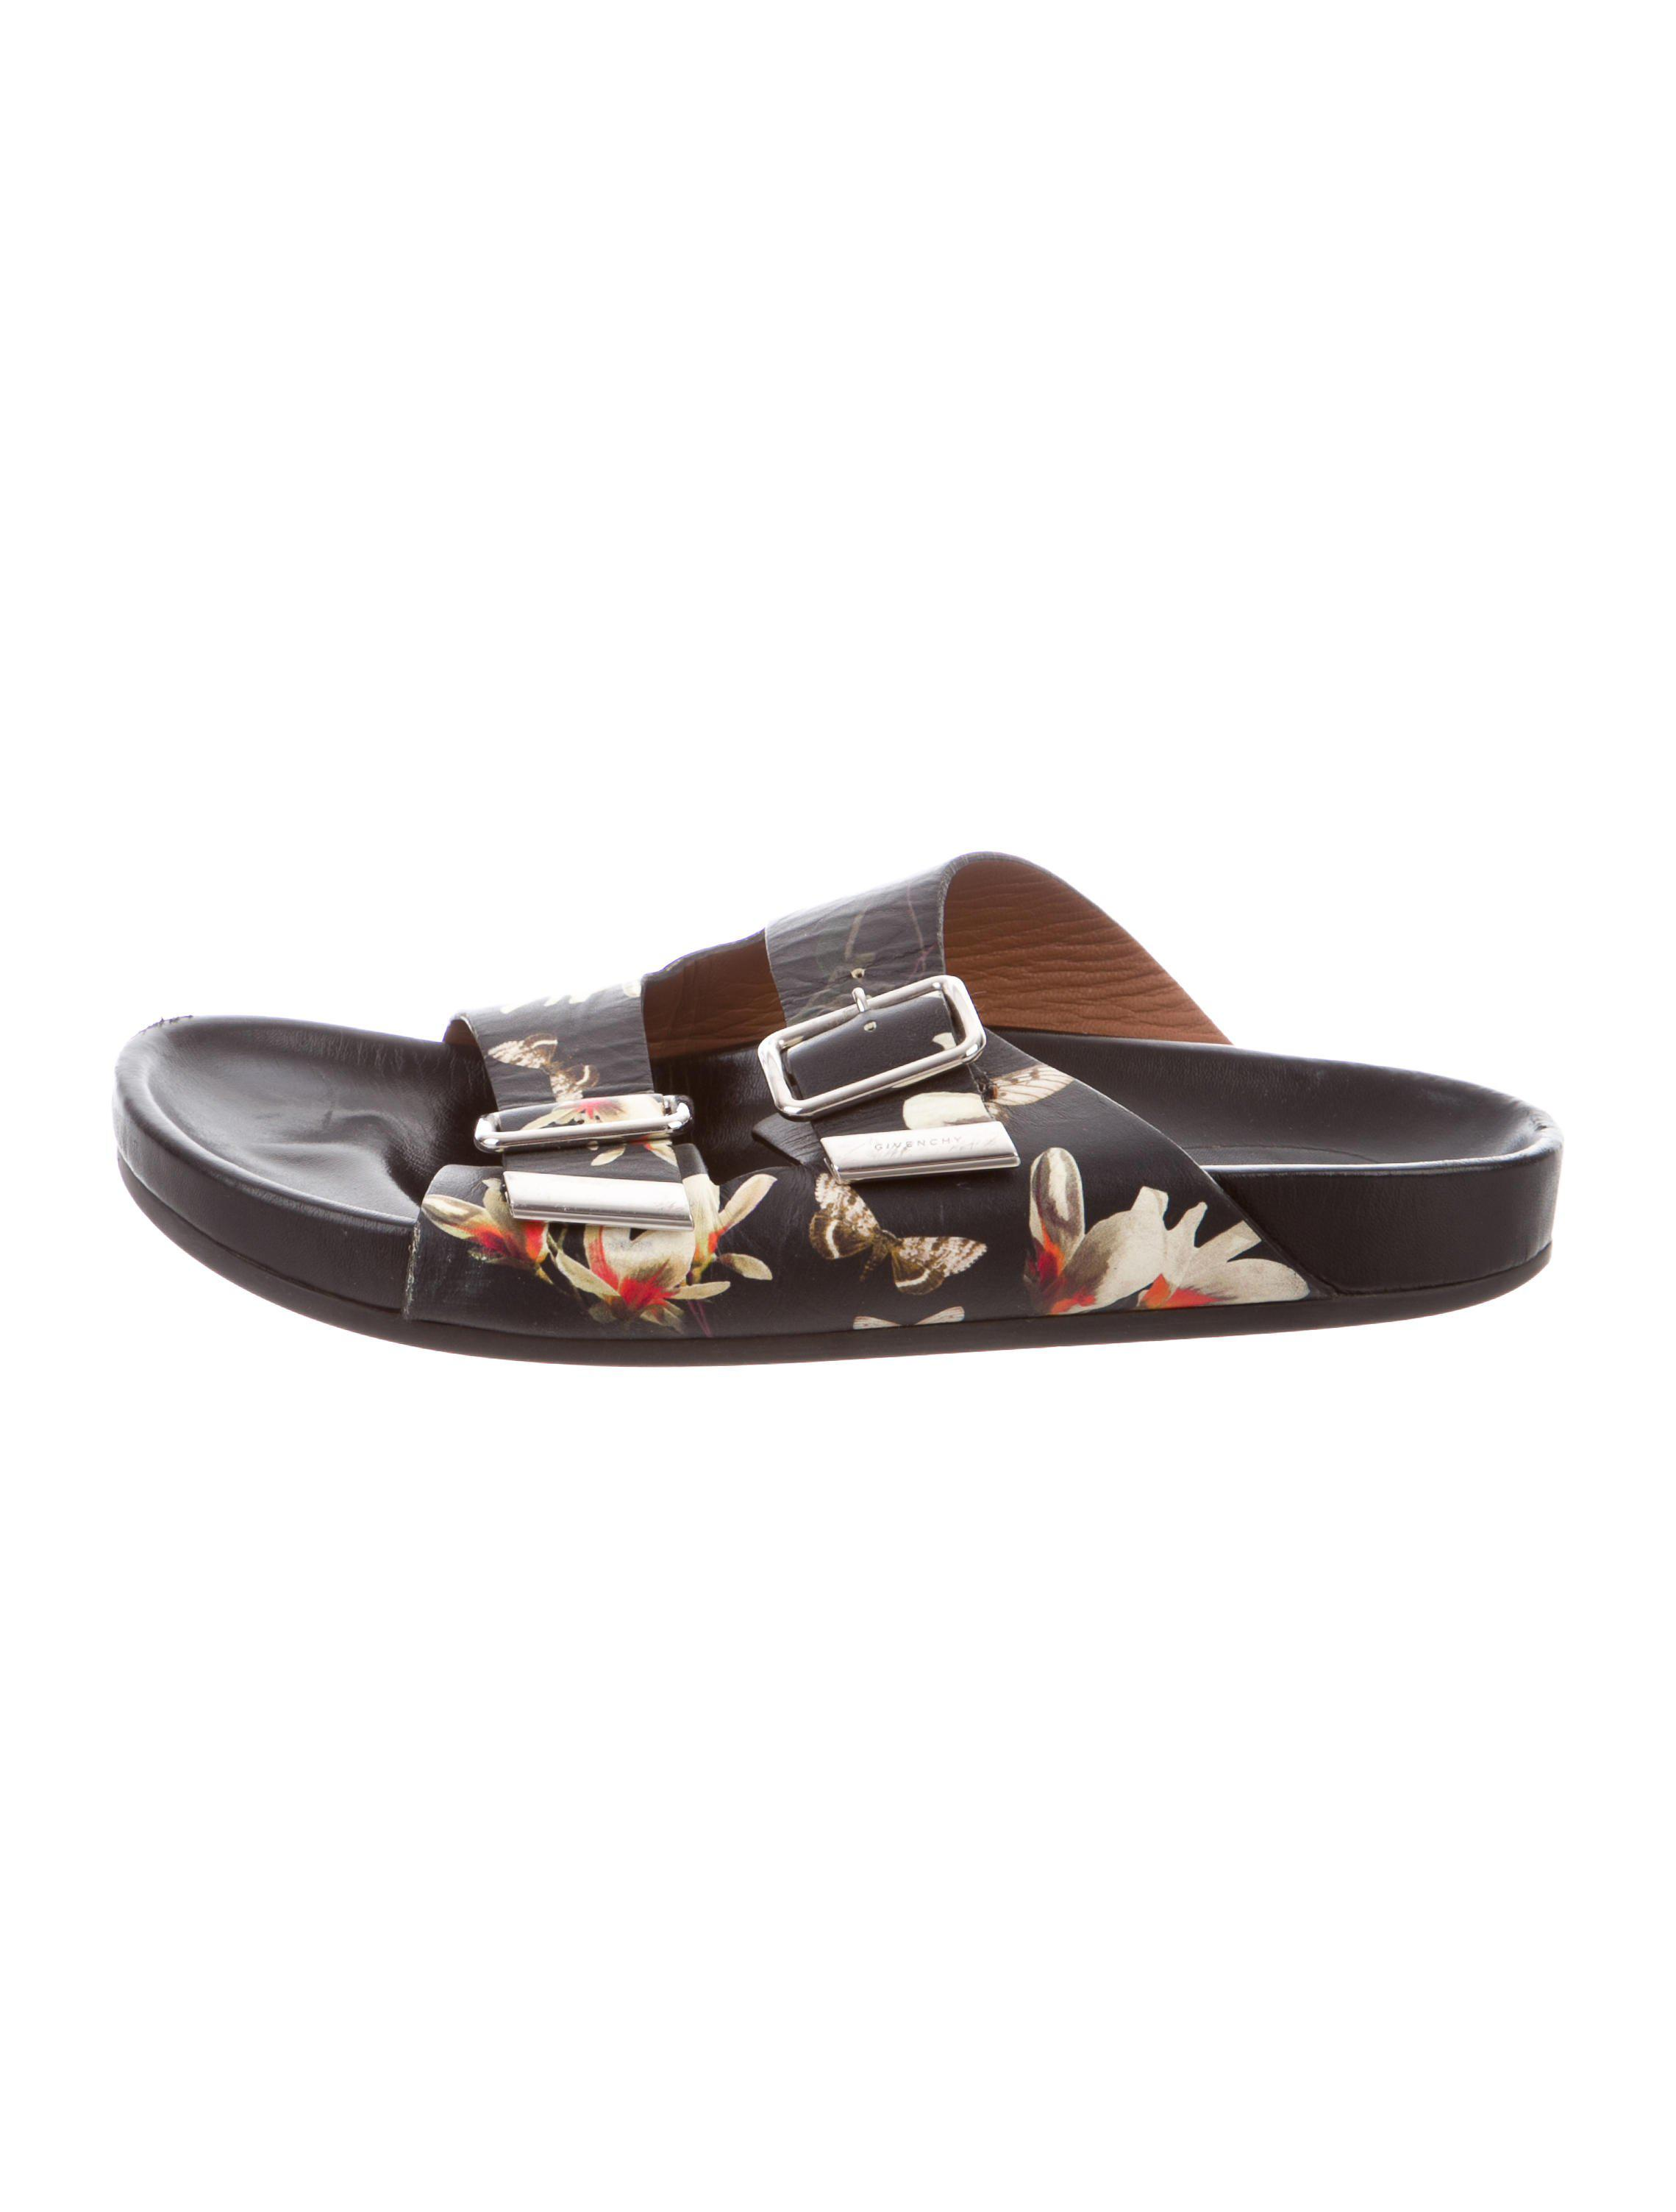 1c7a4ac70ade52 Lyst - Givenchy Floral Slide Sandals Black in Metallic